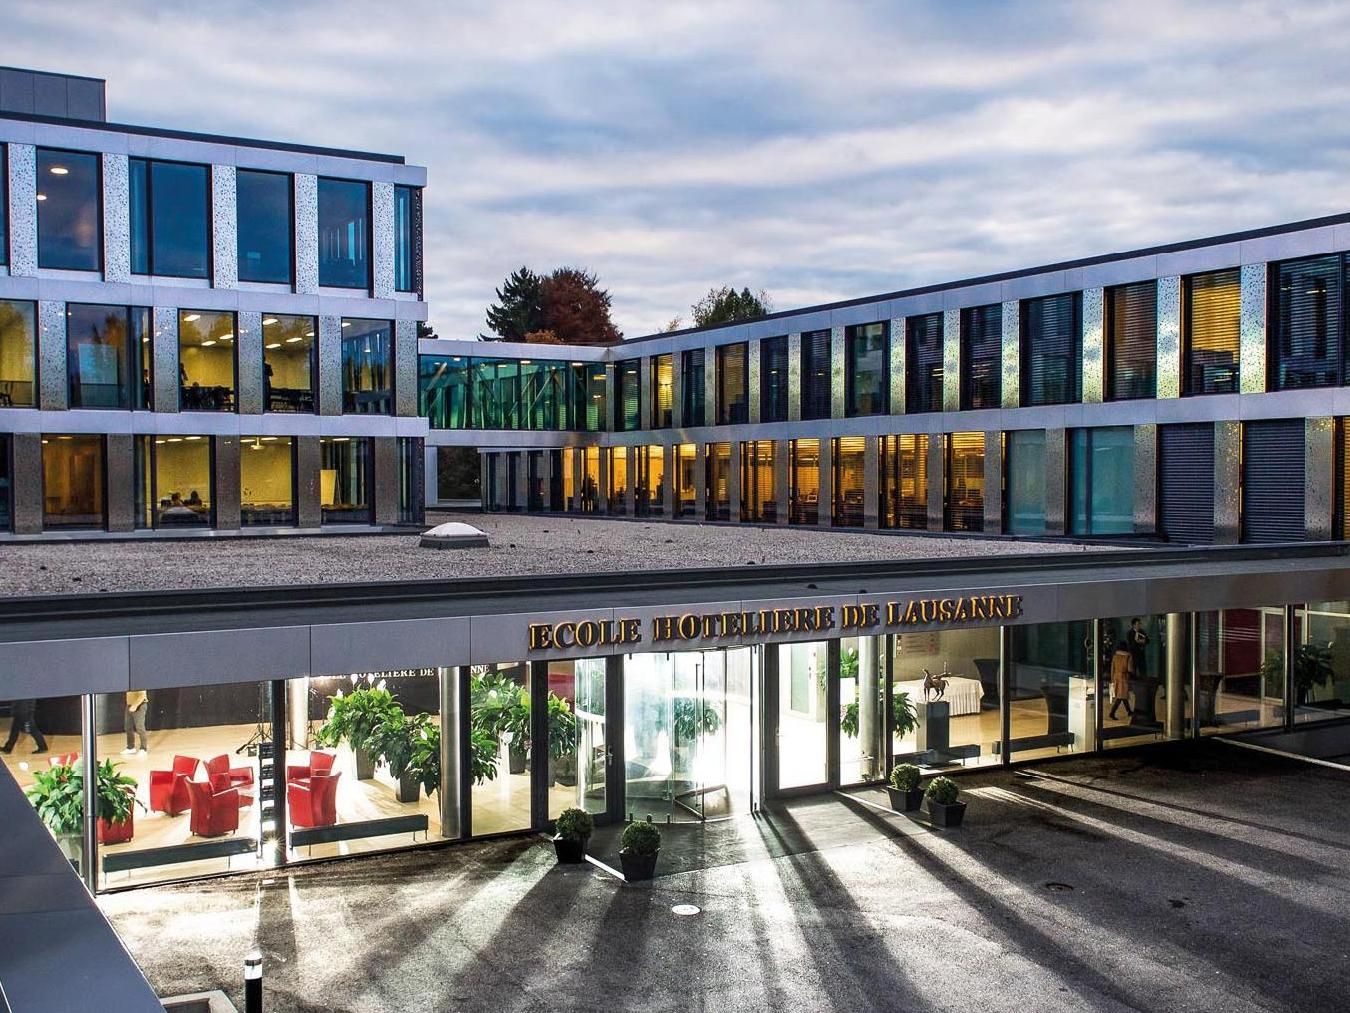 MD-PhD Retreat, a scientific one-day event organized by UNIL and EPFL